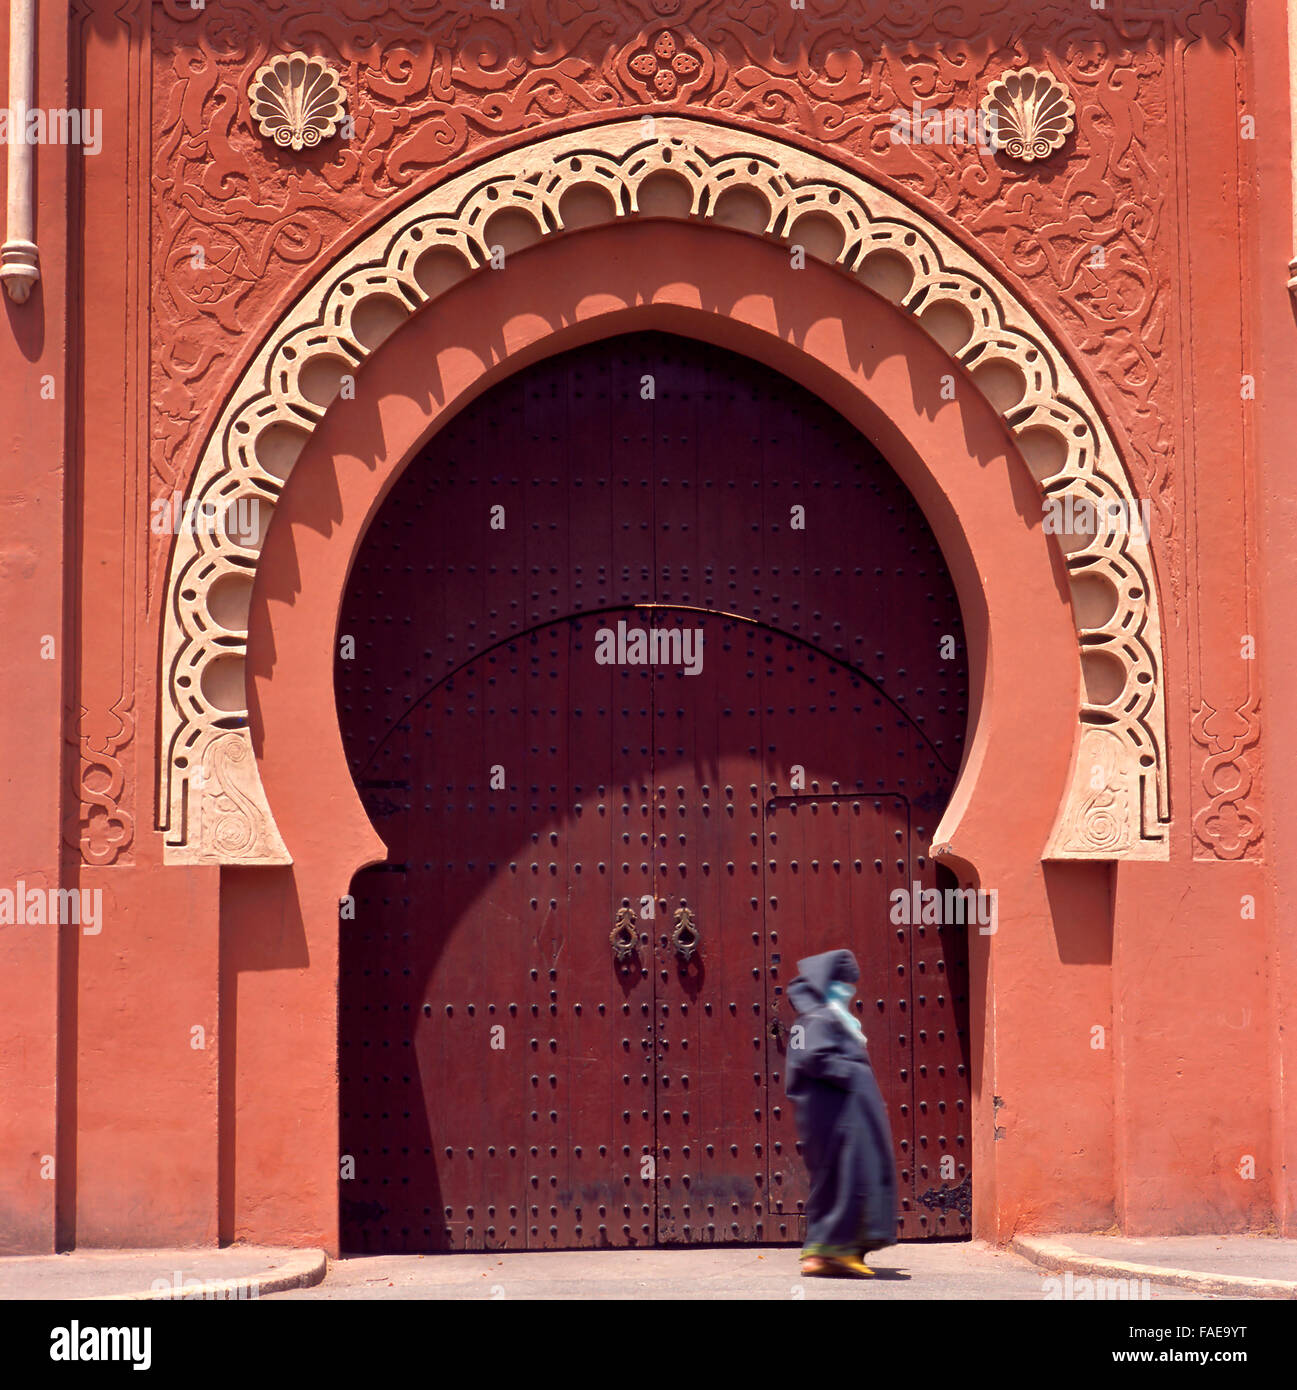 Marrakesh medina decorated gate.Lady is not recognizable because of total veil. Stock Photo